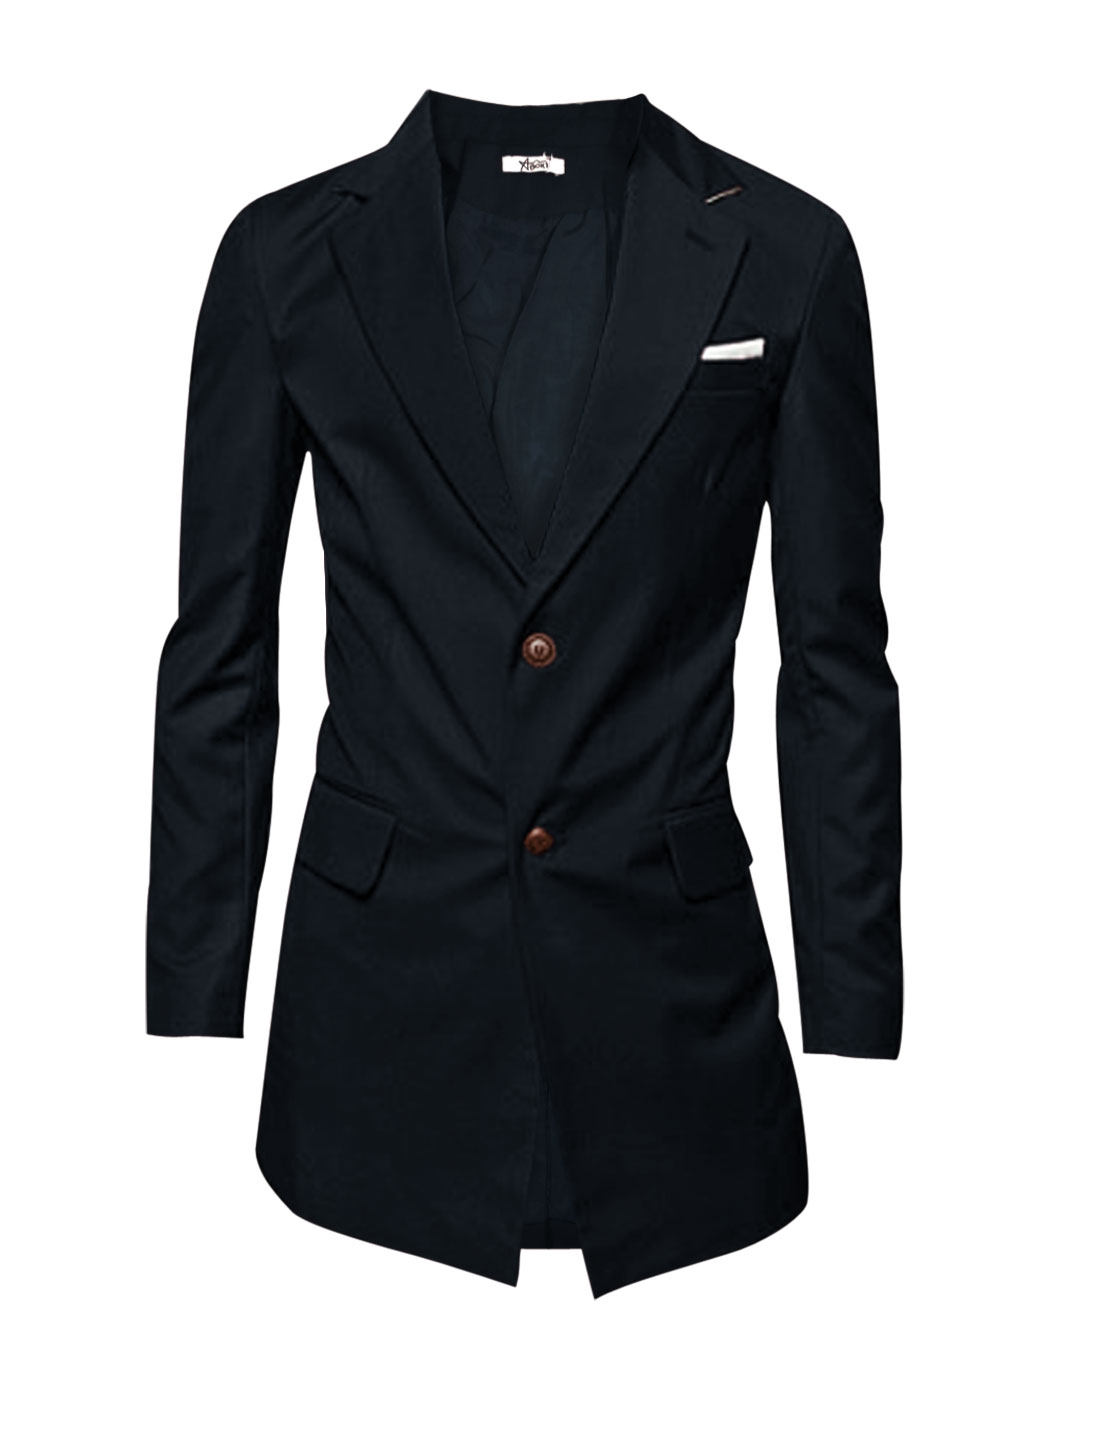 Fashion Notched Lapel Single Breasted Blazer Jacket for Men Dark Blue L